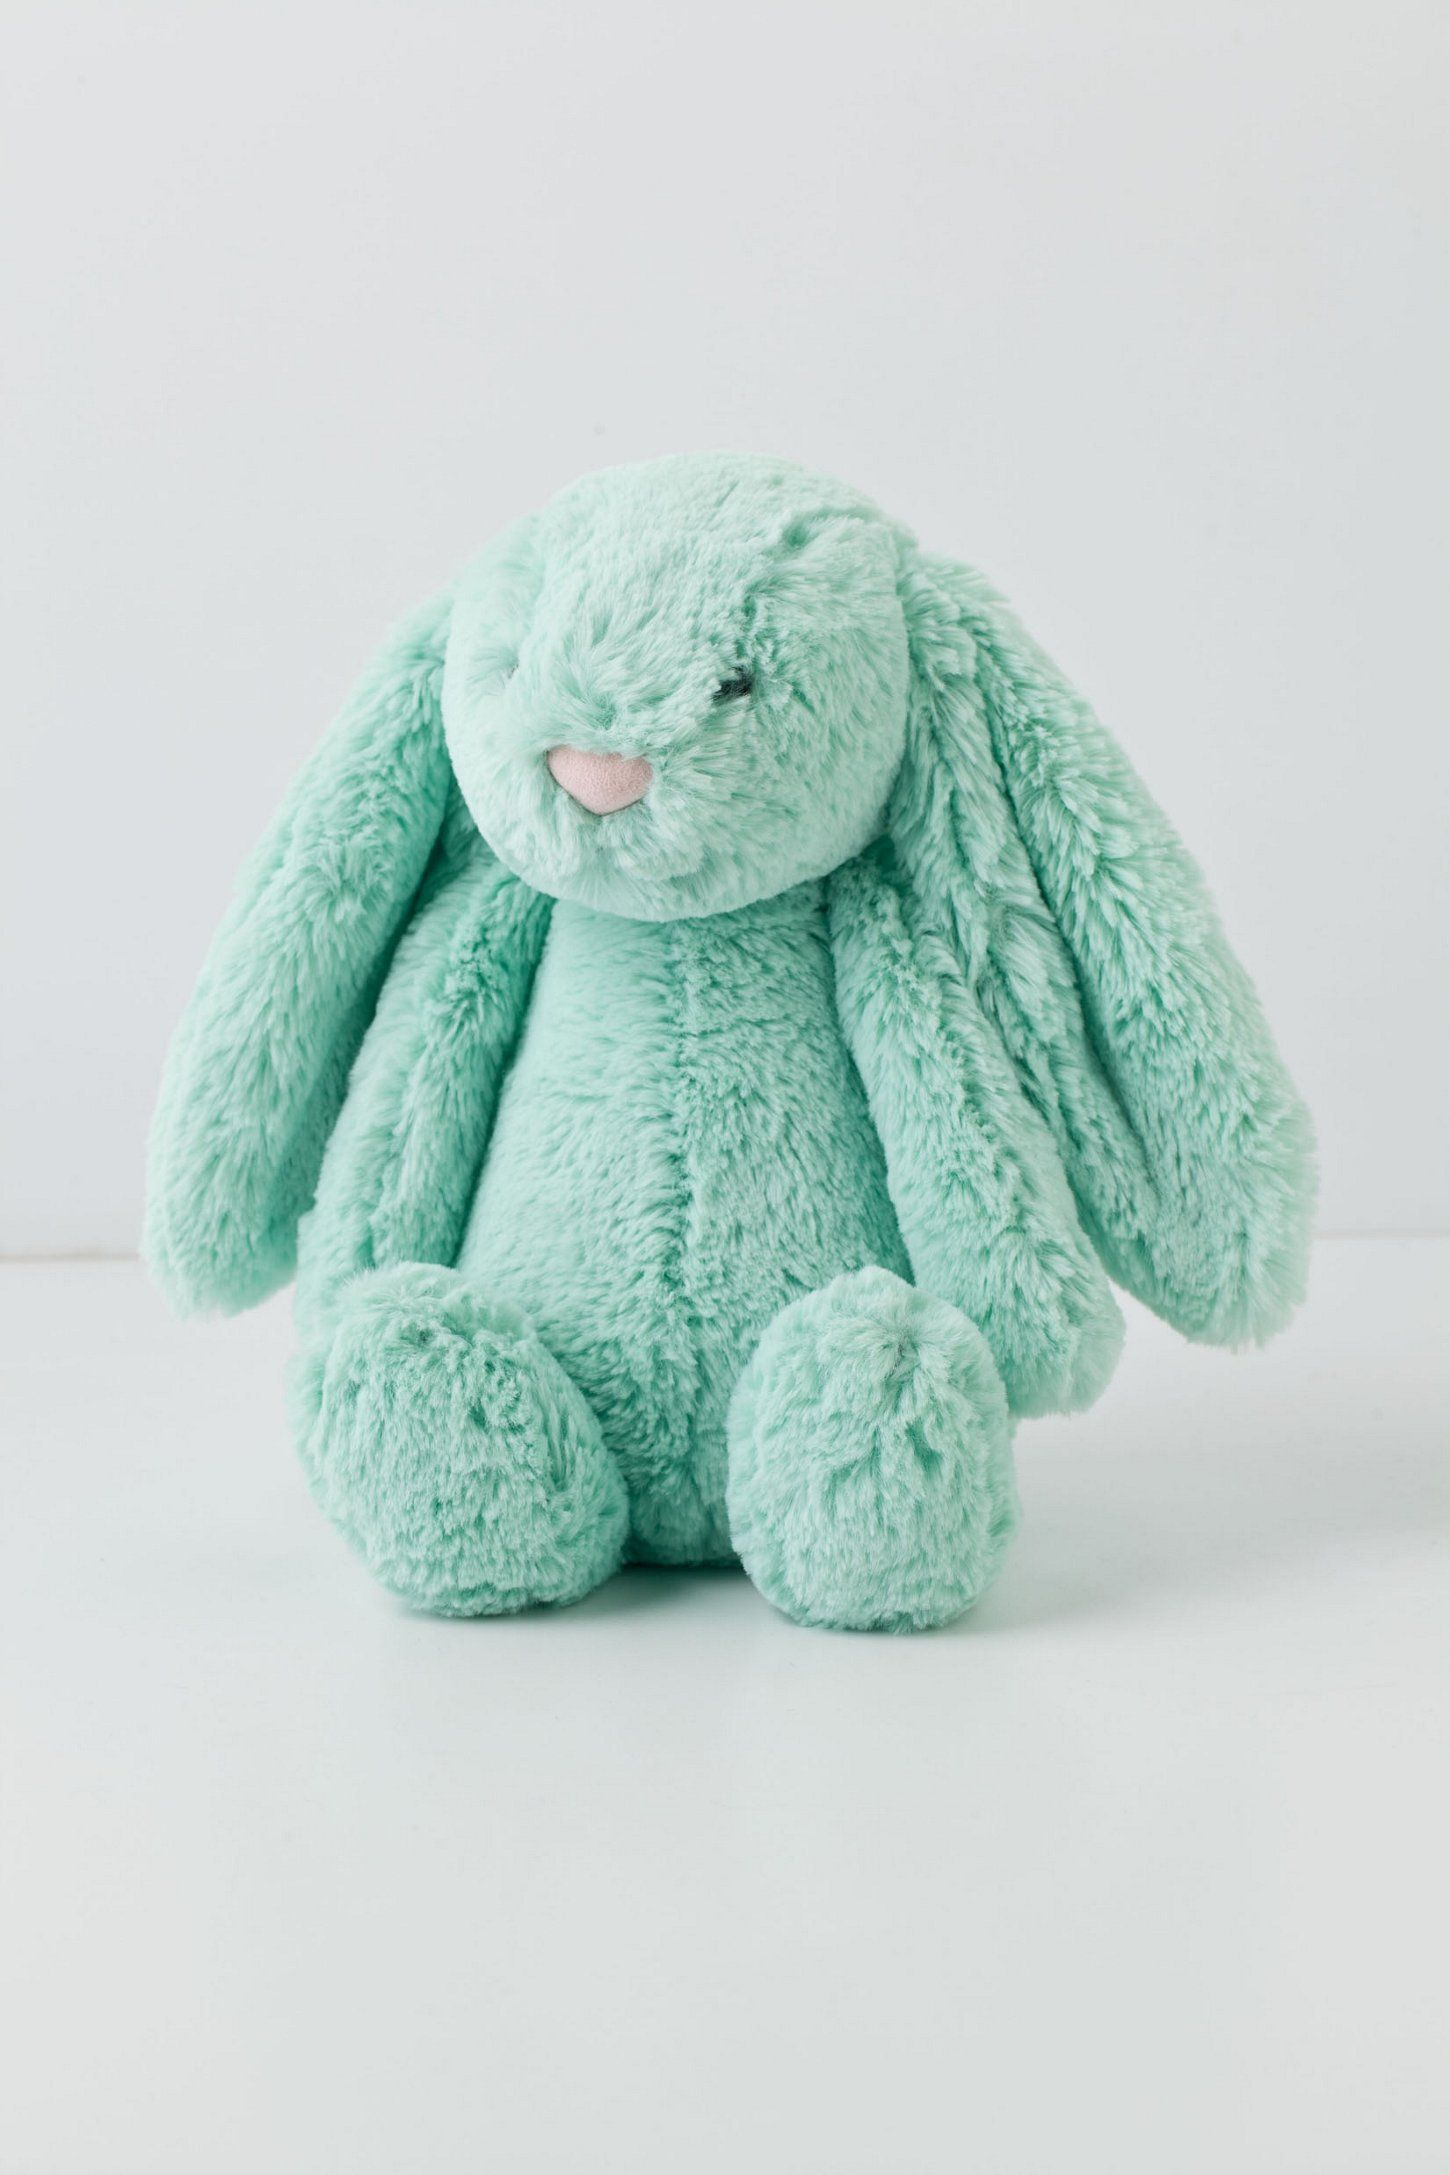 Cottontail Bunny Nursery Kids Room Pastel Mint Mint